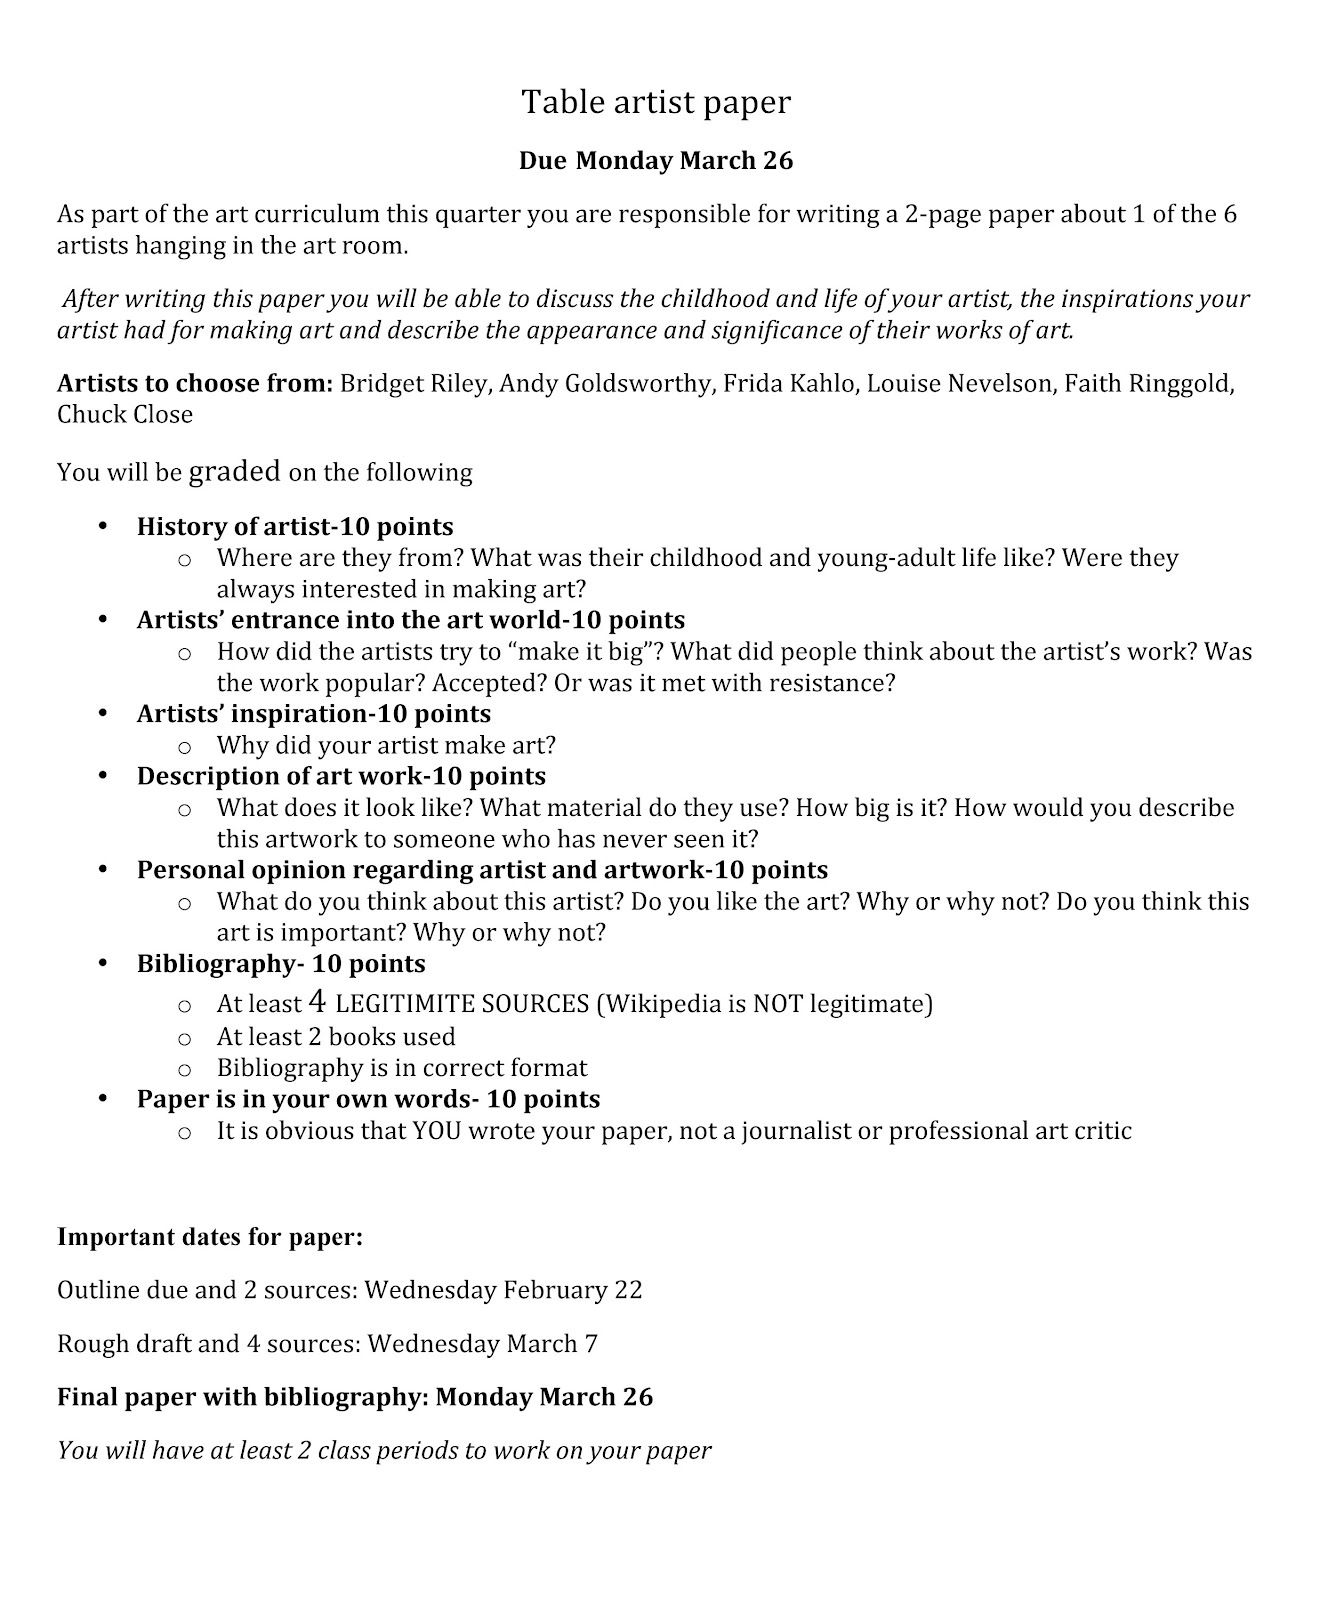 015 Table20artist20paper Essay Example Outline Impressive Guide Layout Mini-q Answers Dbq Full